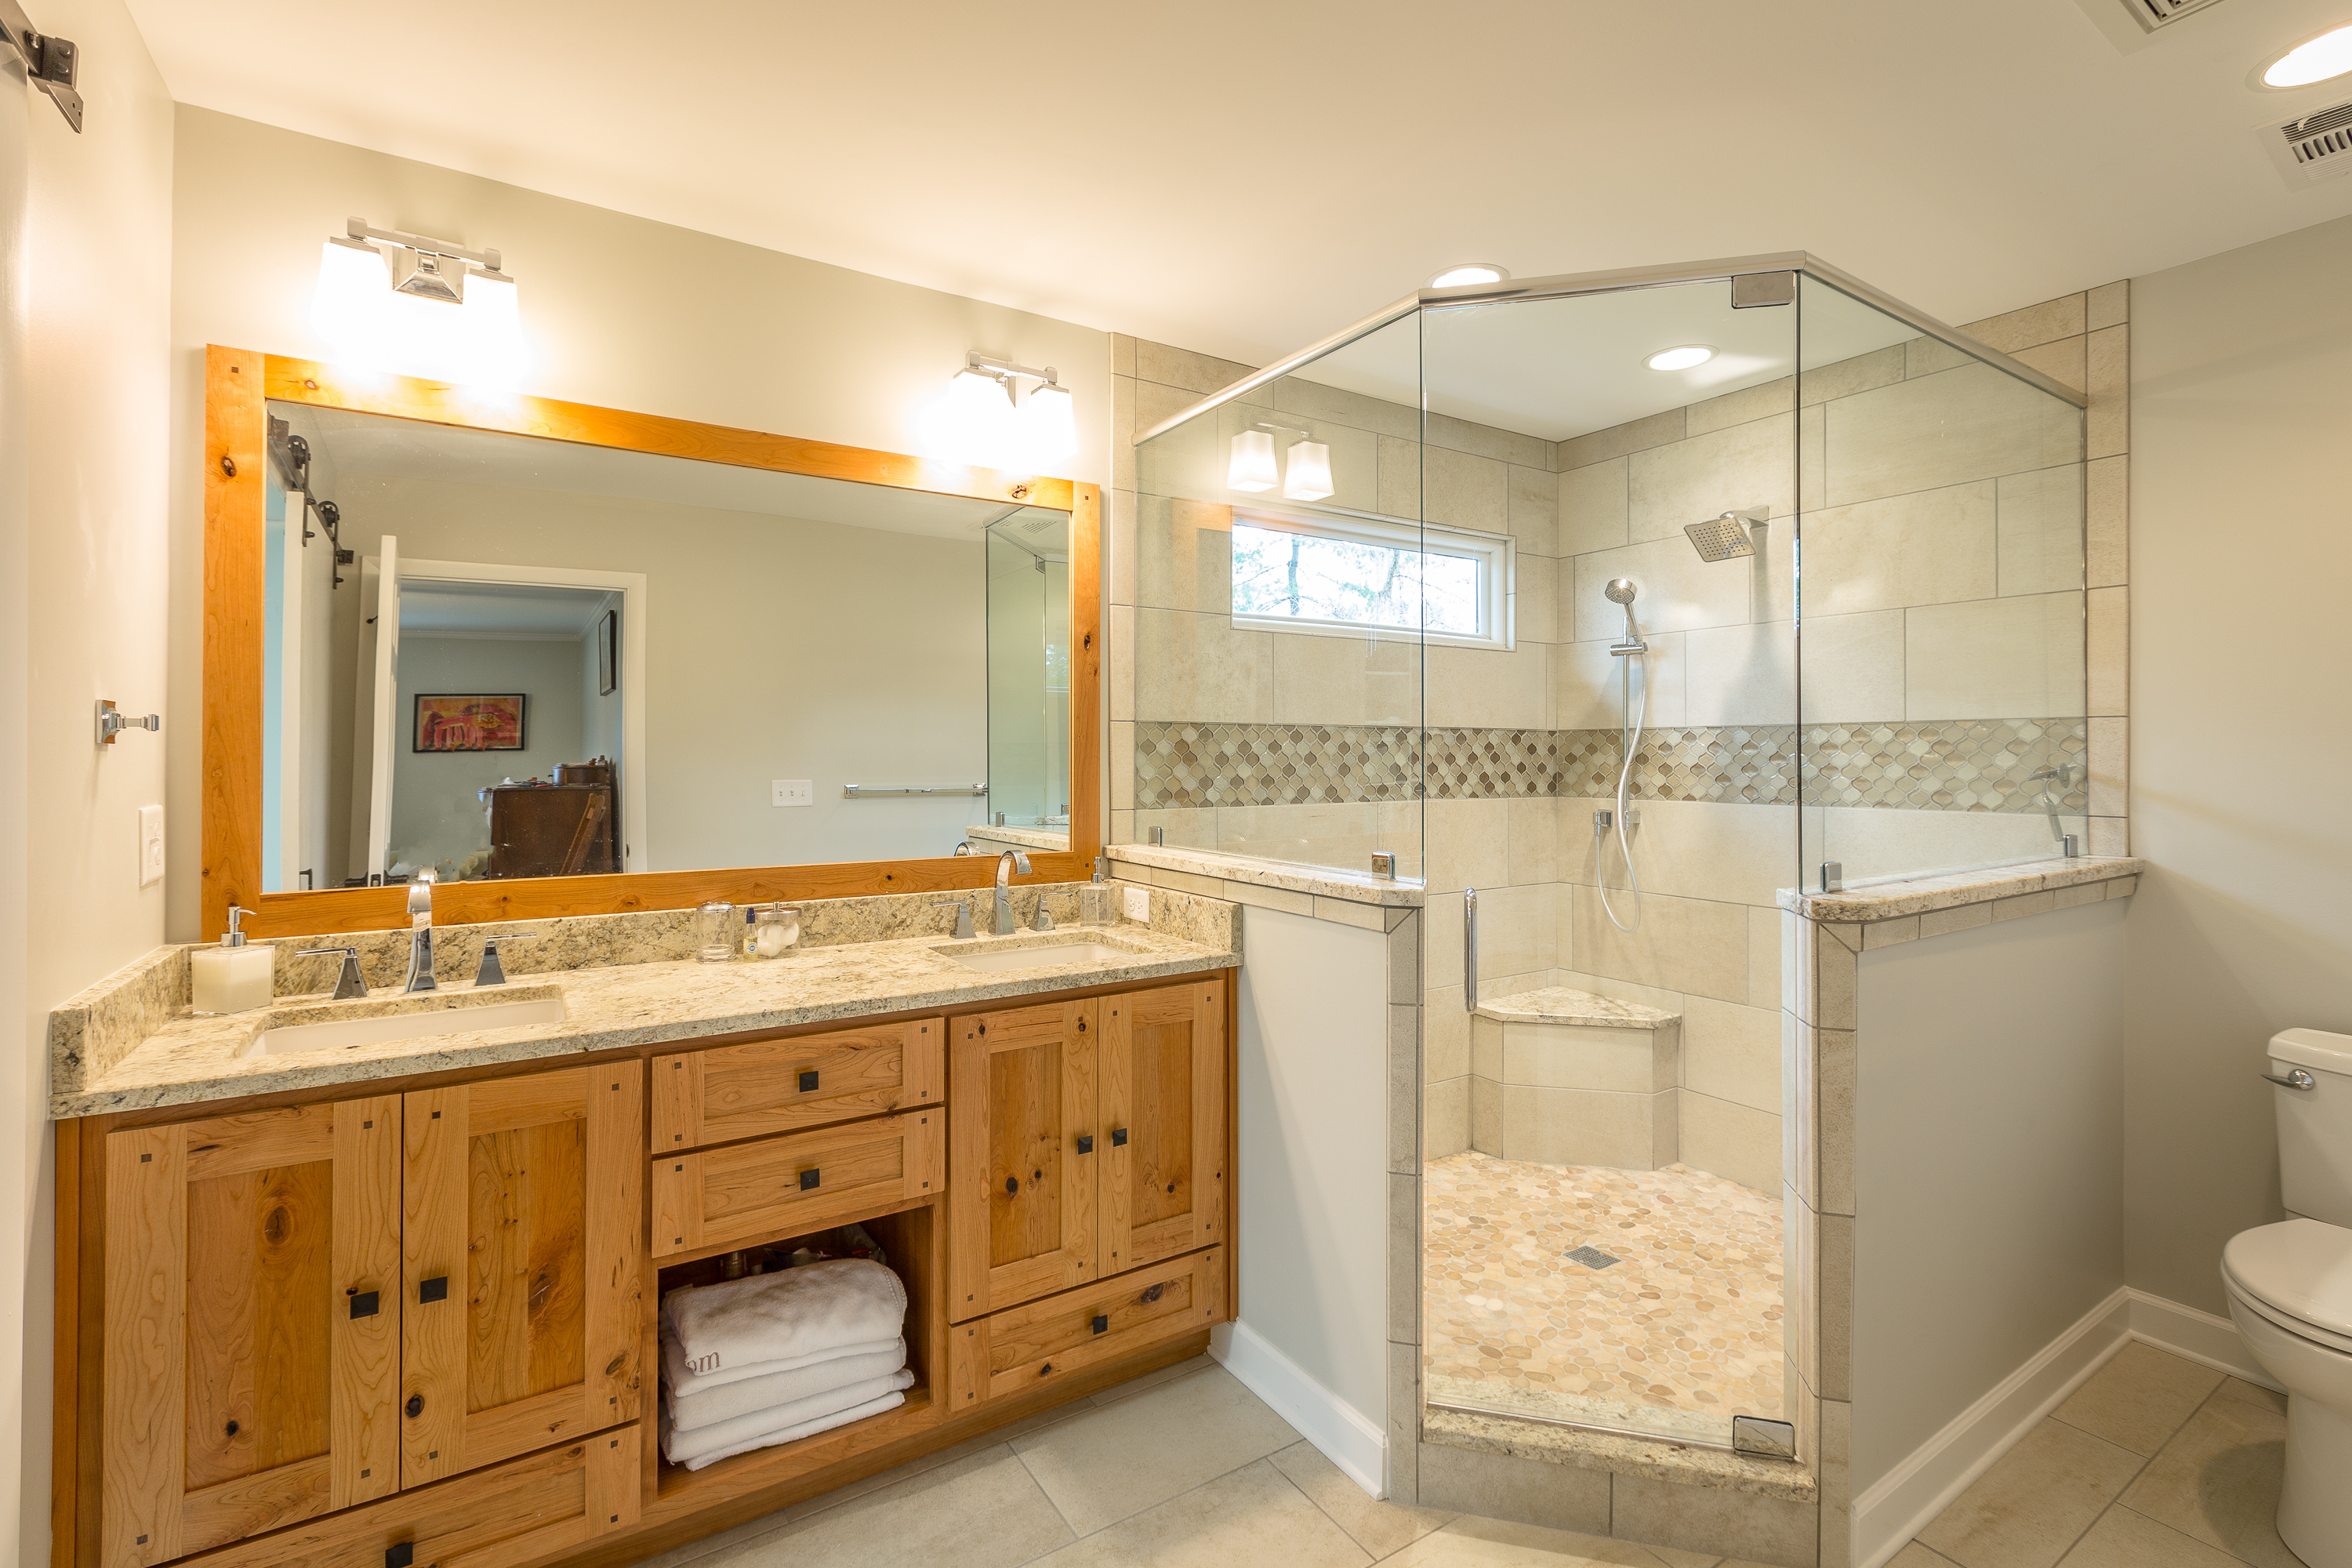 awesome rustic bathroom tn archives info category image hgtv ideas remodeled beautiful unique of remodeling chattanooga bathroomdesignimages remodel